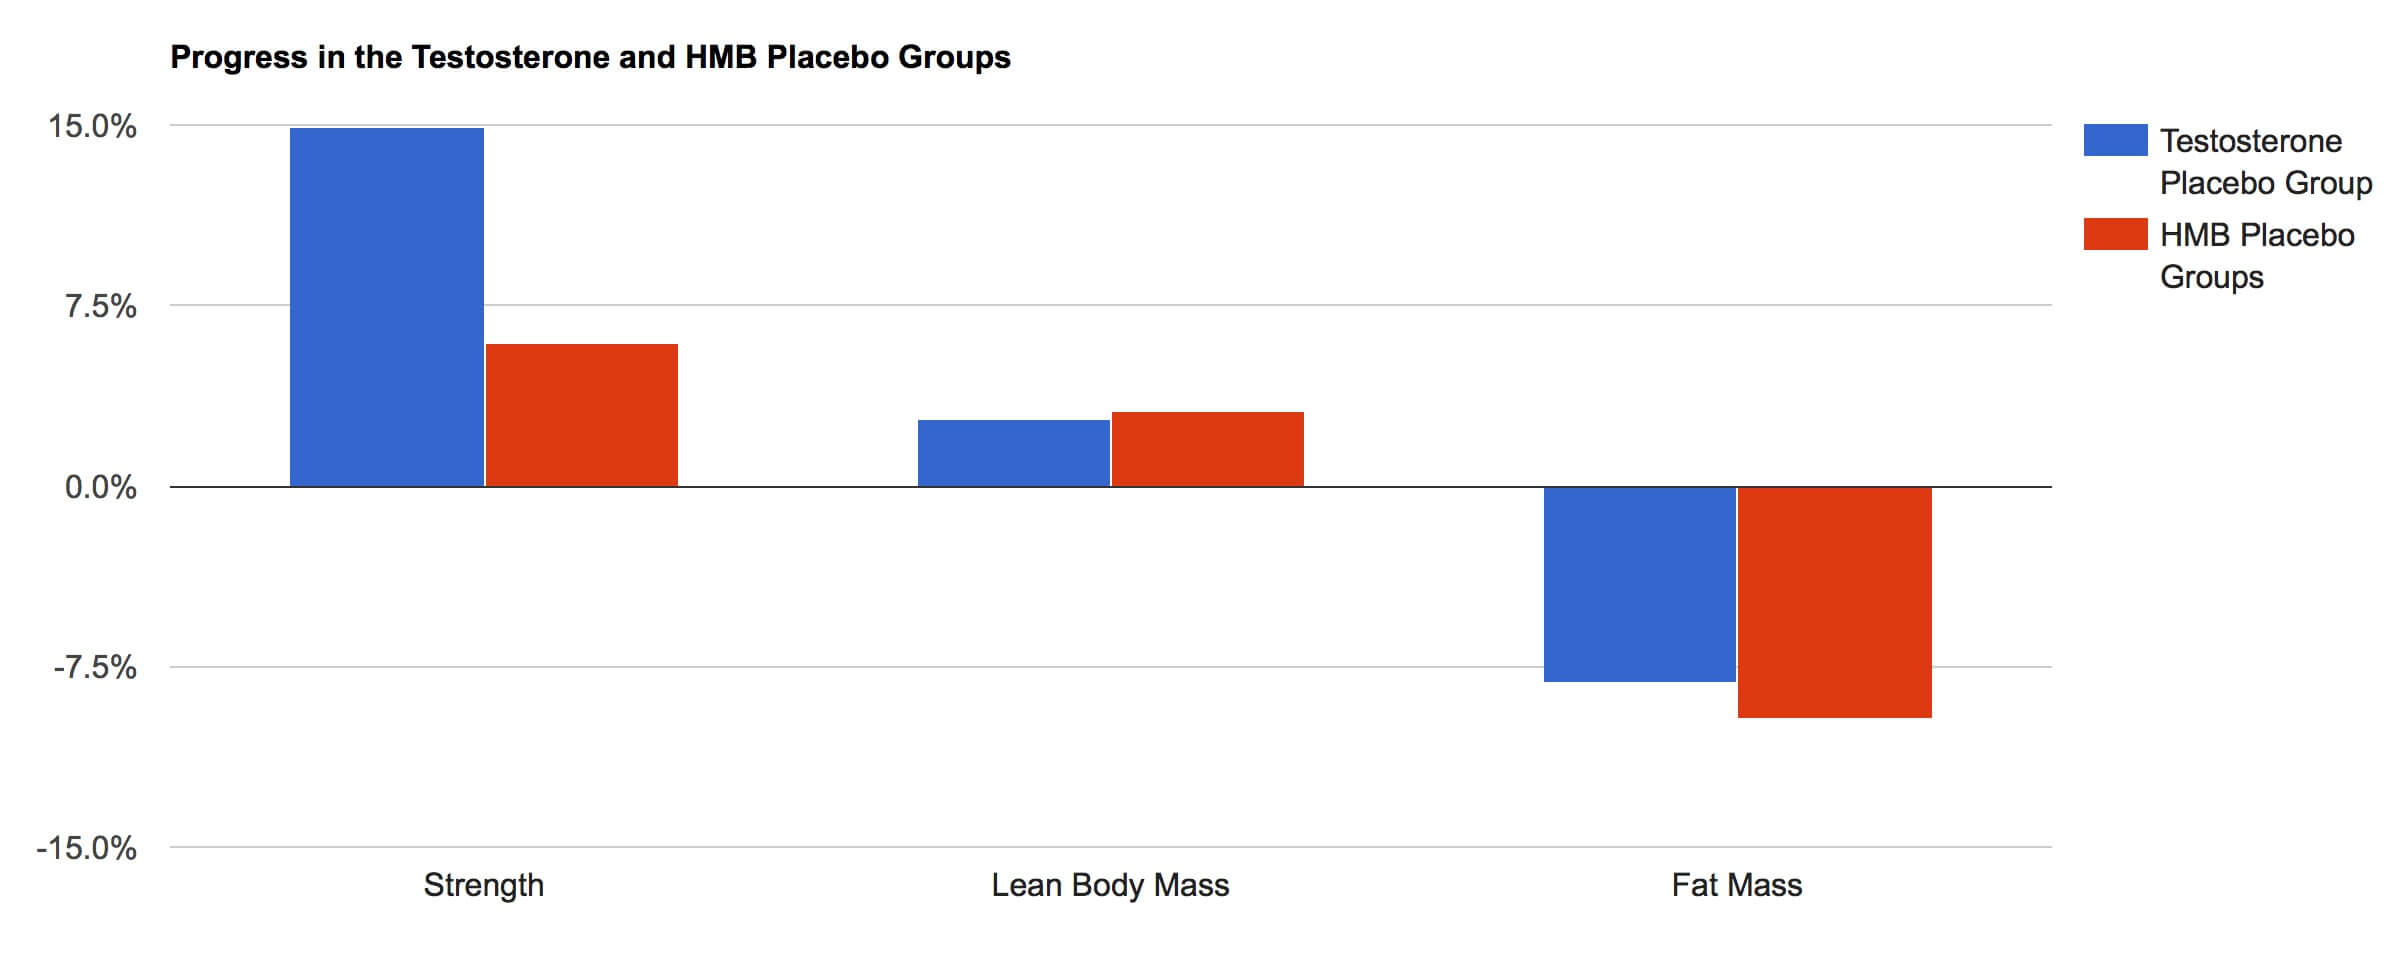 HMB vs. Testosterone Placebo Groups